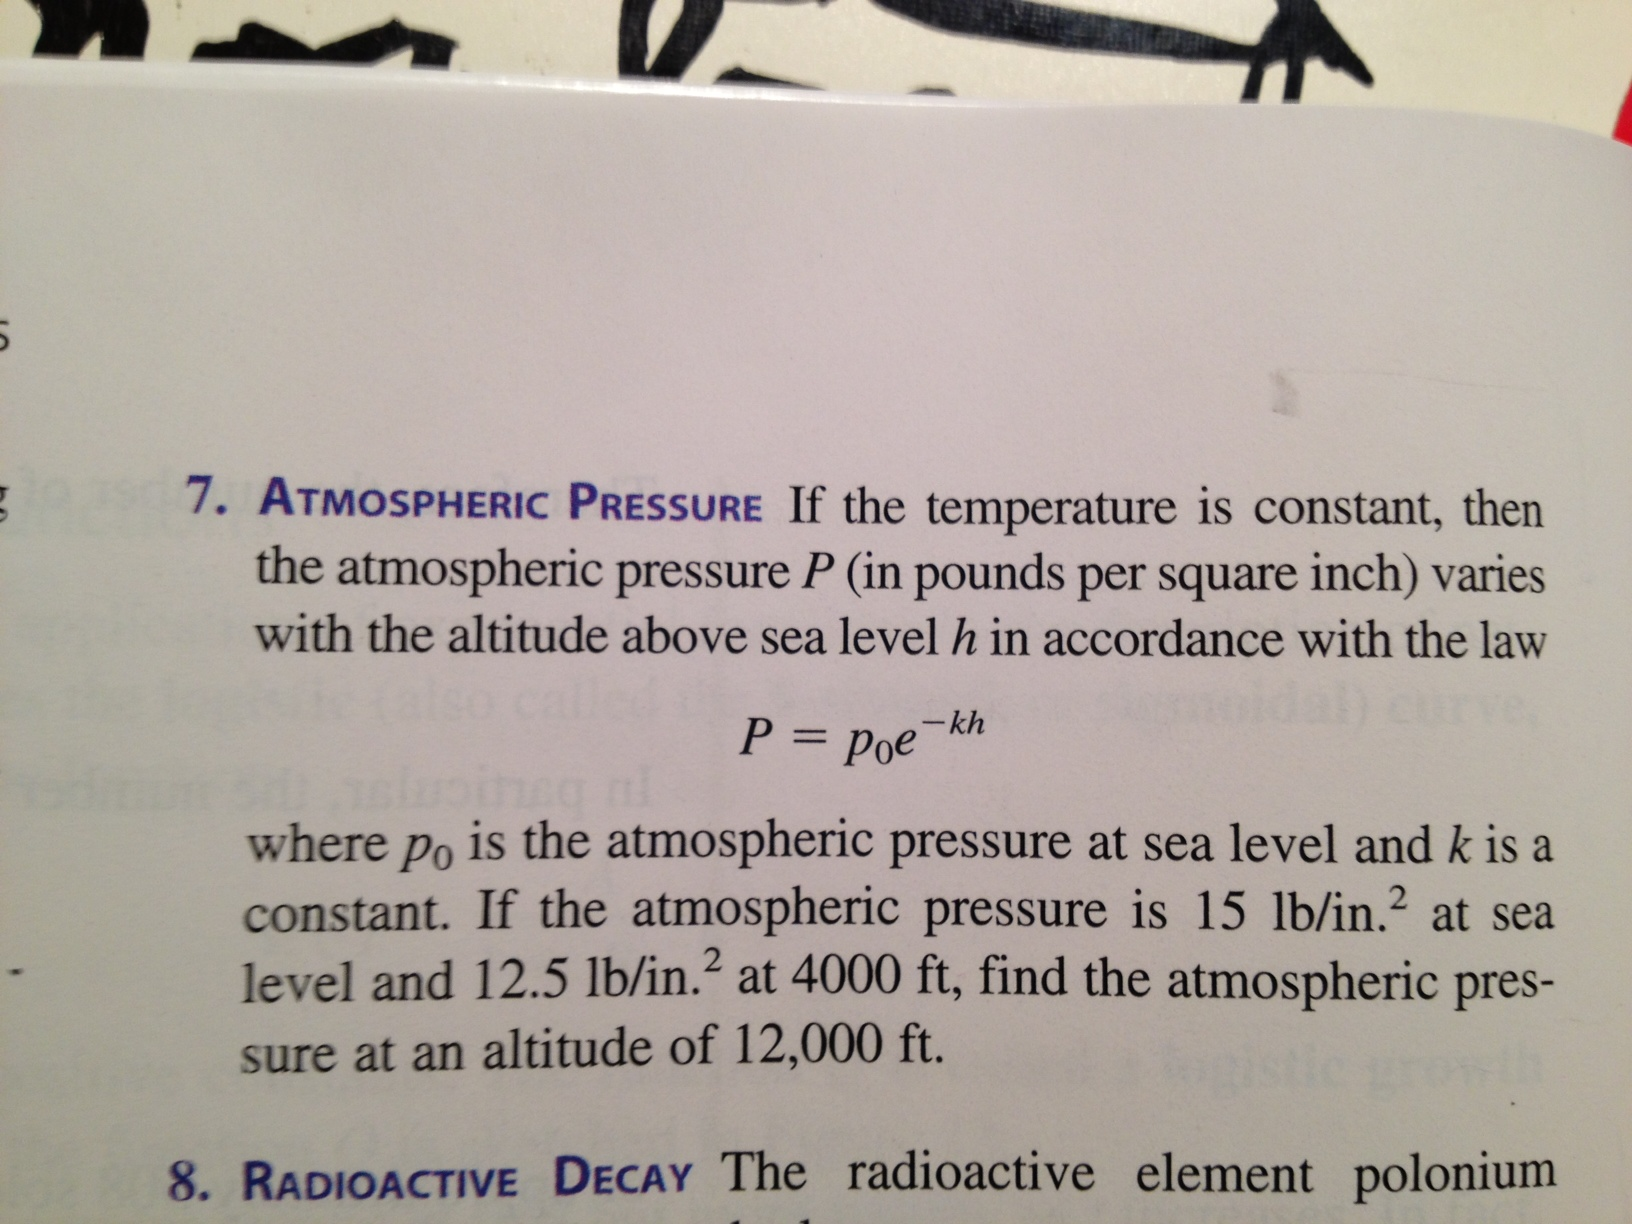 Atmospheric Pressure If the temperature is constan